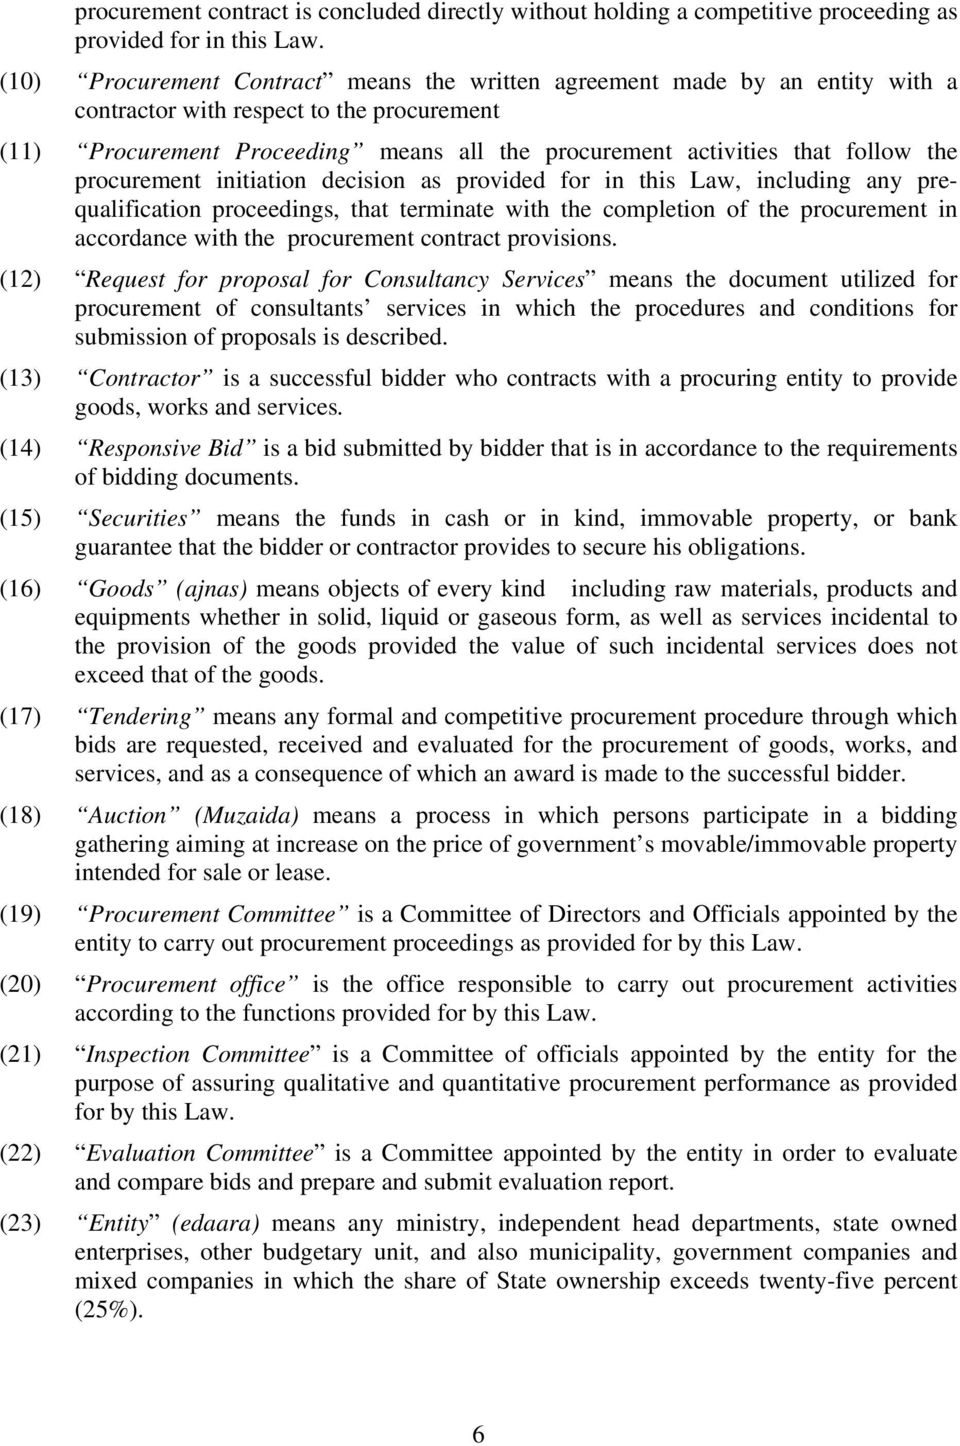 the procurement initiation decision as provided for in this Law, including any prequalification proceedings, that terminate with the completion of the procurement in accordance with the procurement